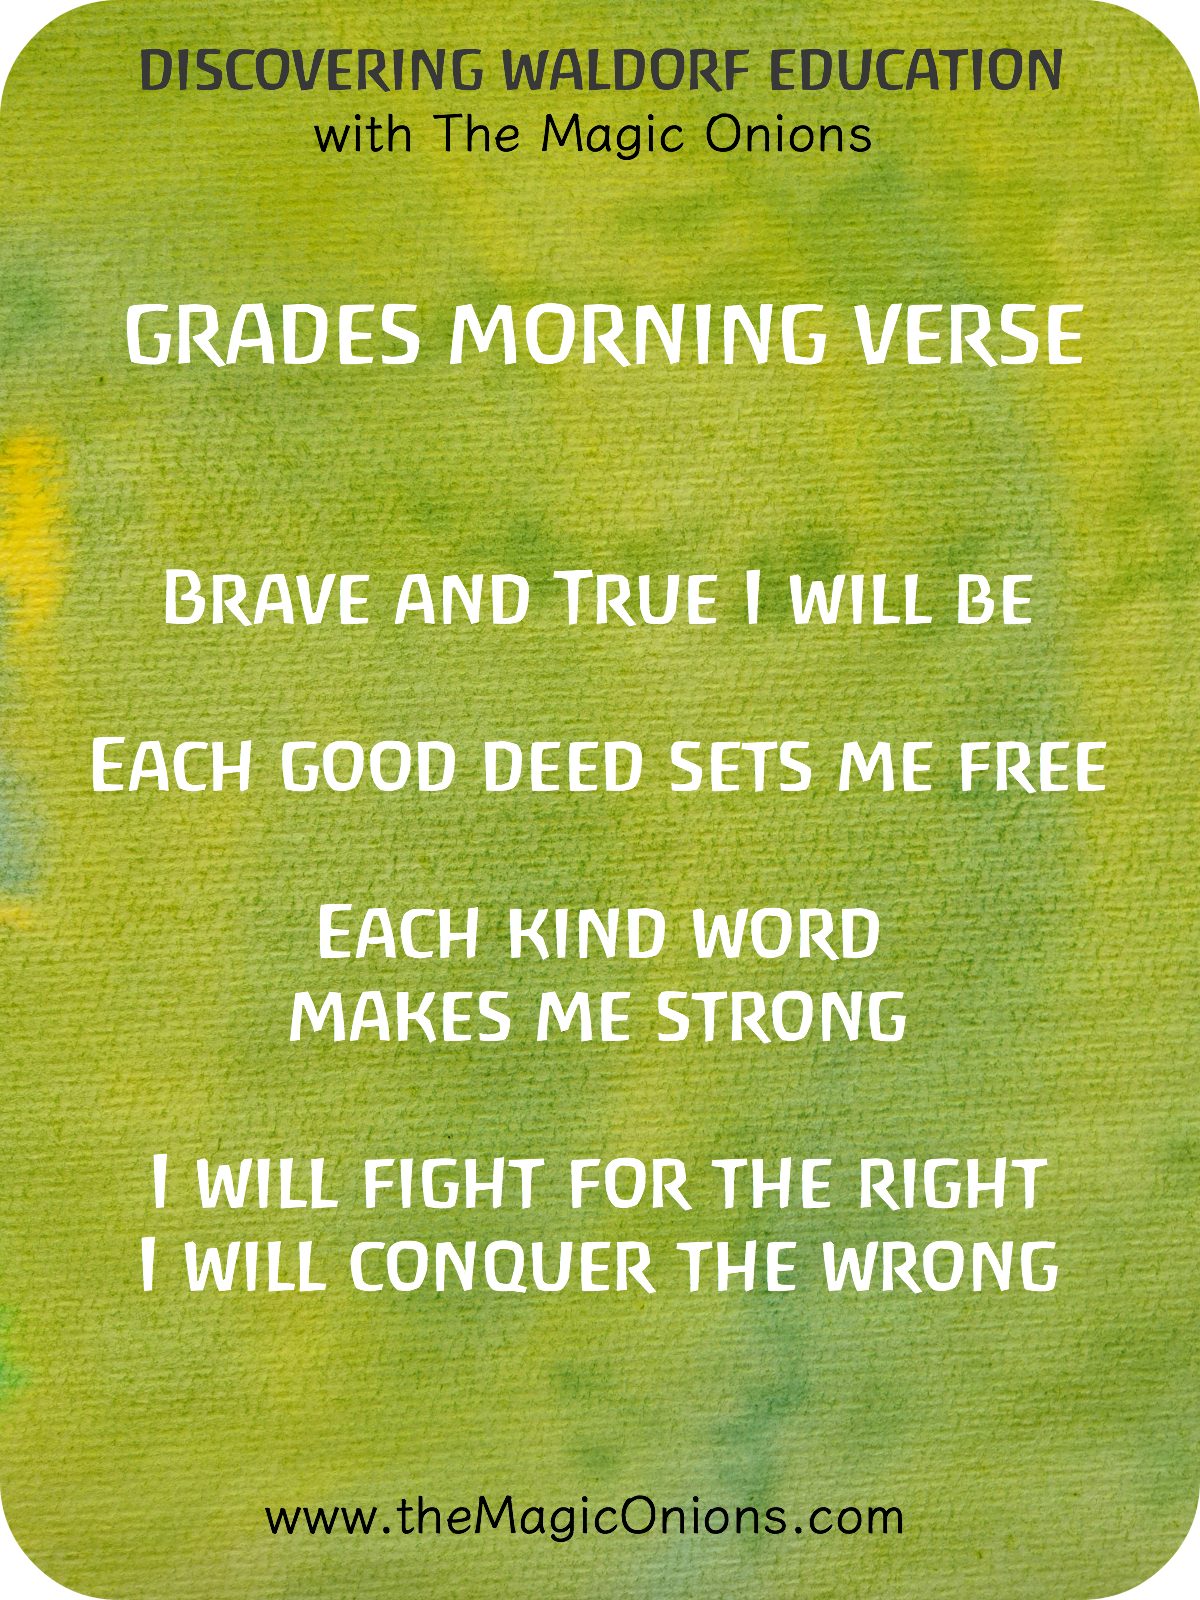 Waldorf Morning Verses for the Grades : Brave and true I will be, each good deed sets me free